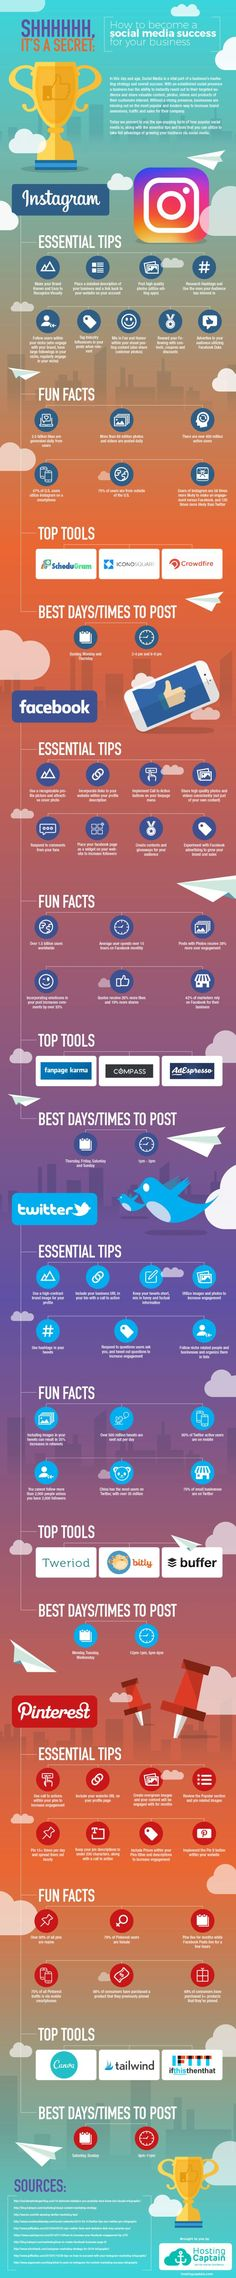 50 Tips & Tools to Become a Pro at Social Media Marketing #Infographic